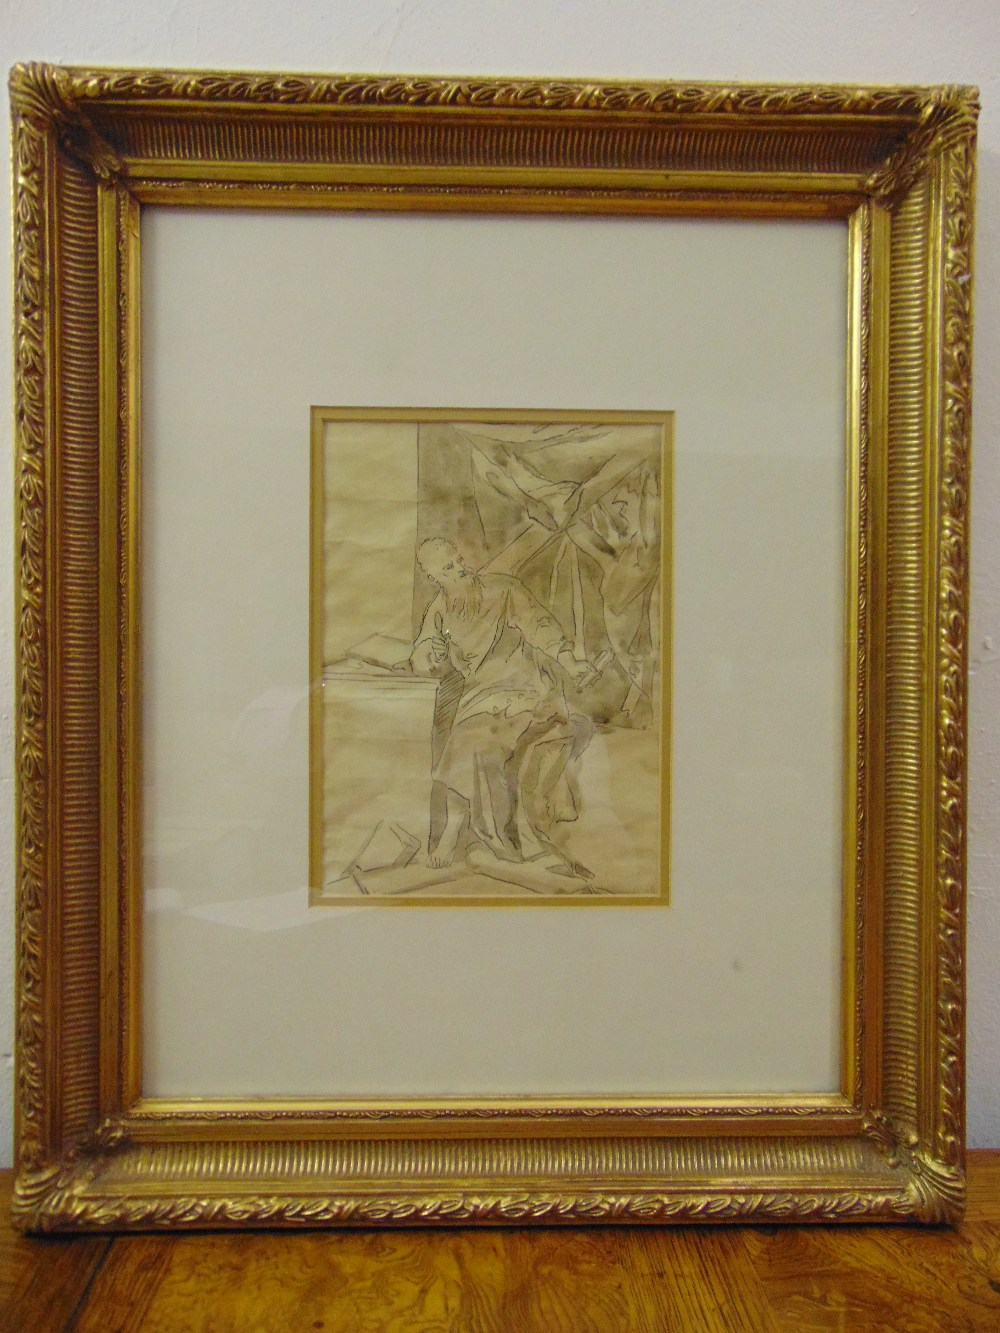 Lot 38 - A framed and glazed sepia drawing of a classical figure, 26 x 19cm